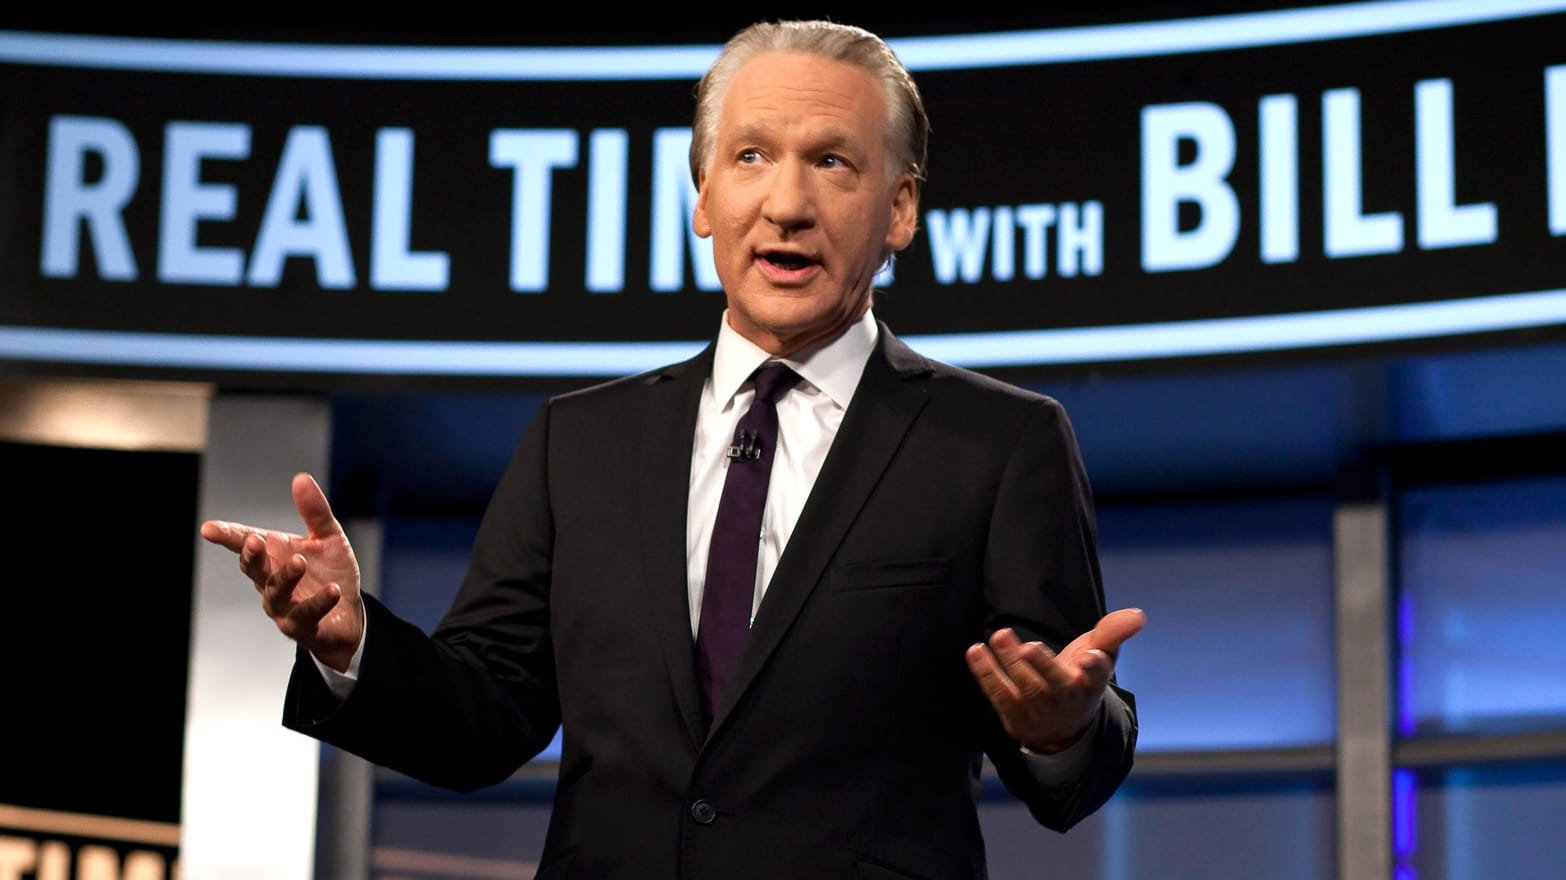 Bill Maher Goes After Trump for His Petty John McCain Insults